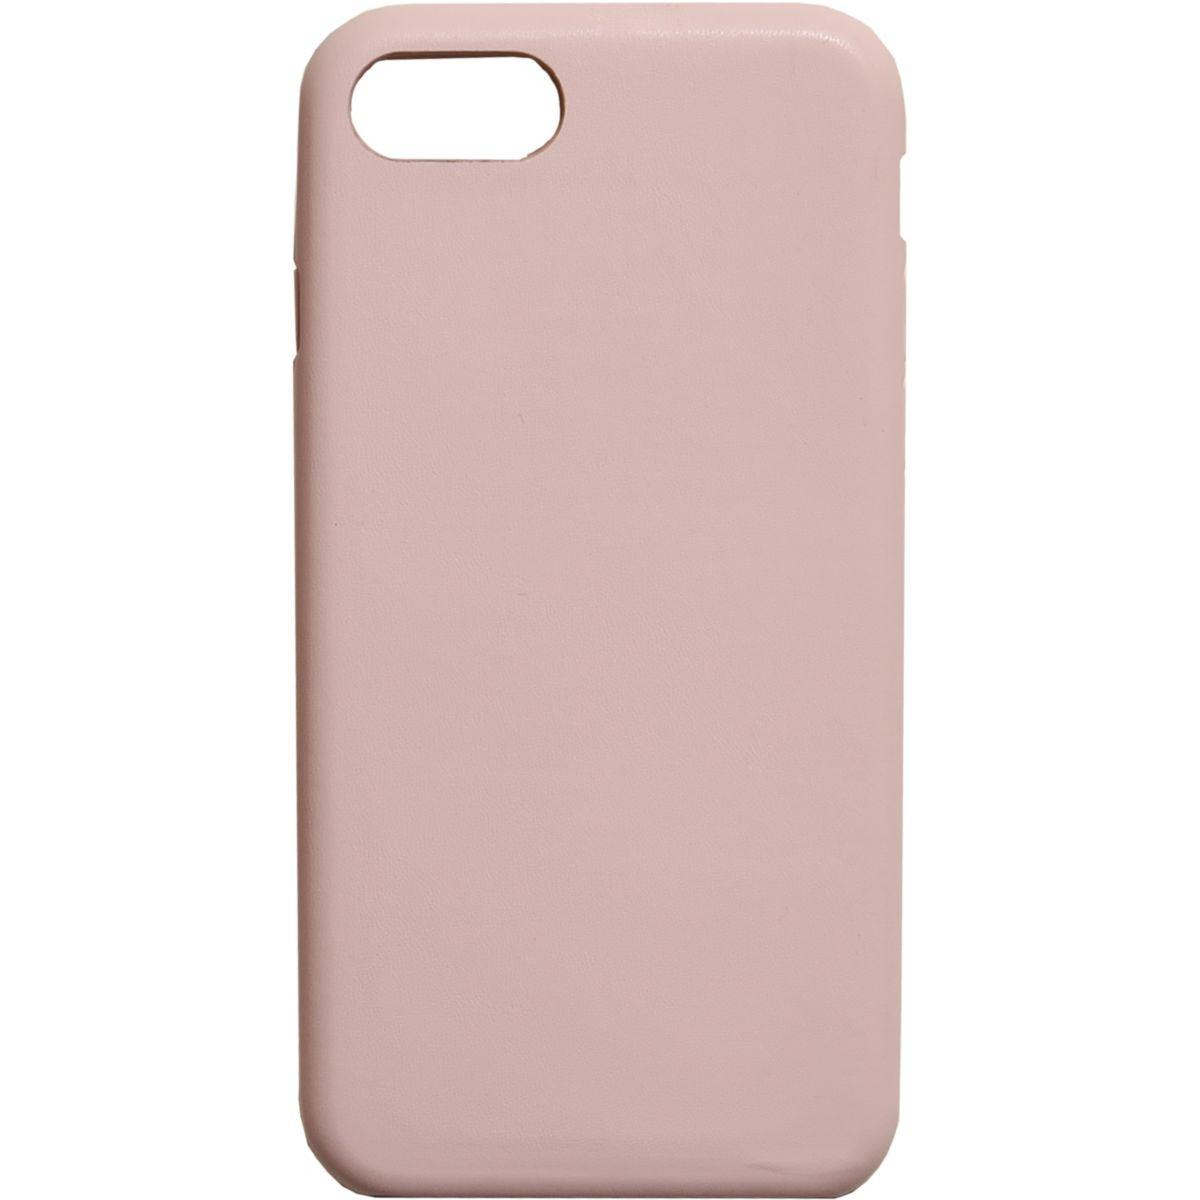 Coque adeqwat iphone 7 plus nude (photo)